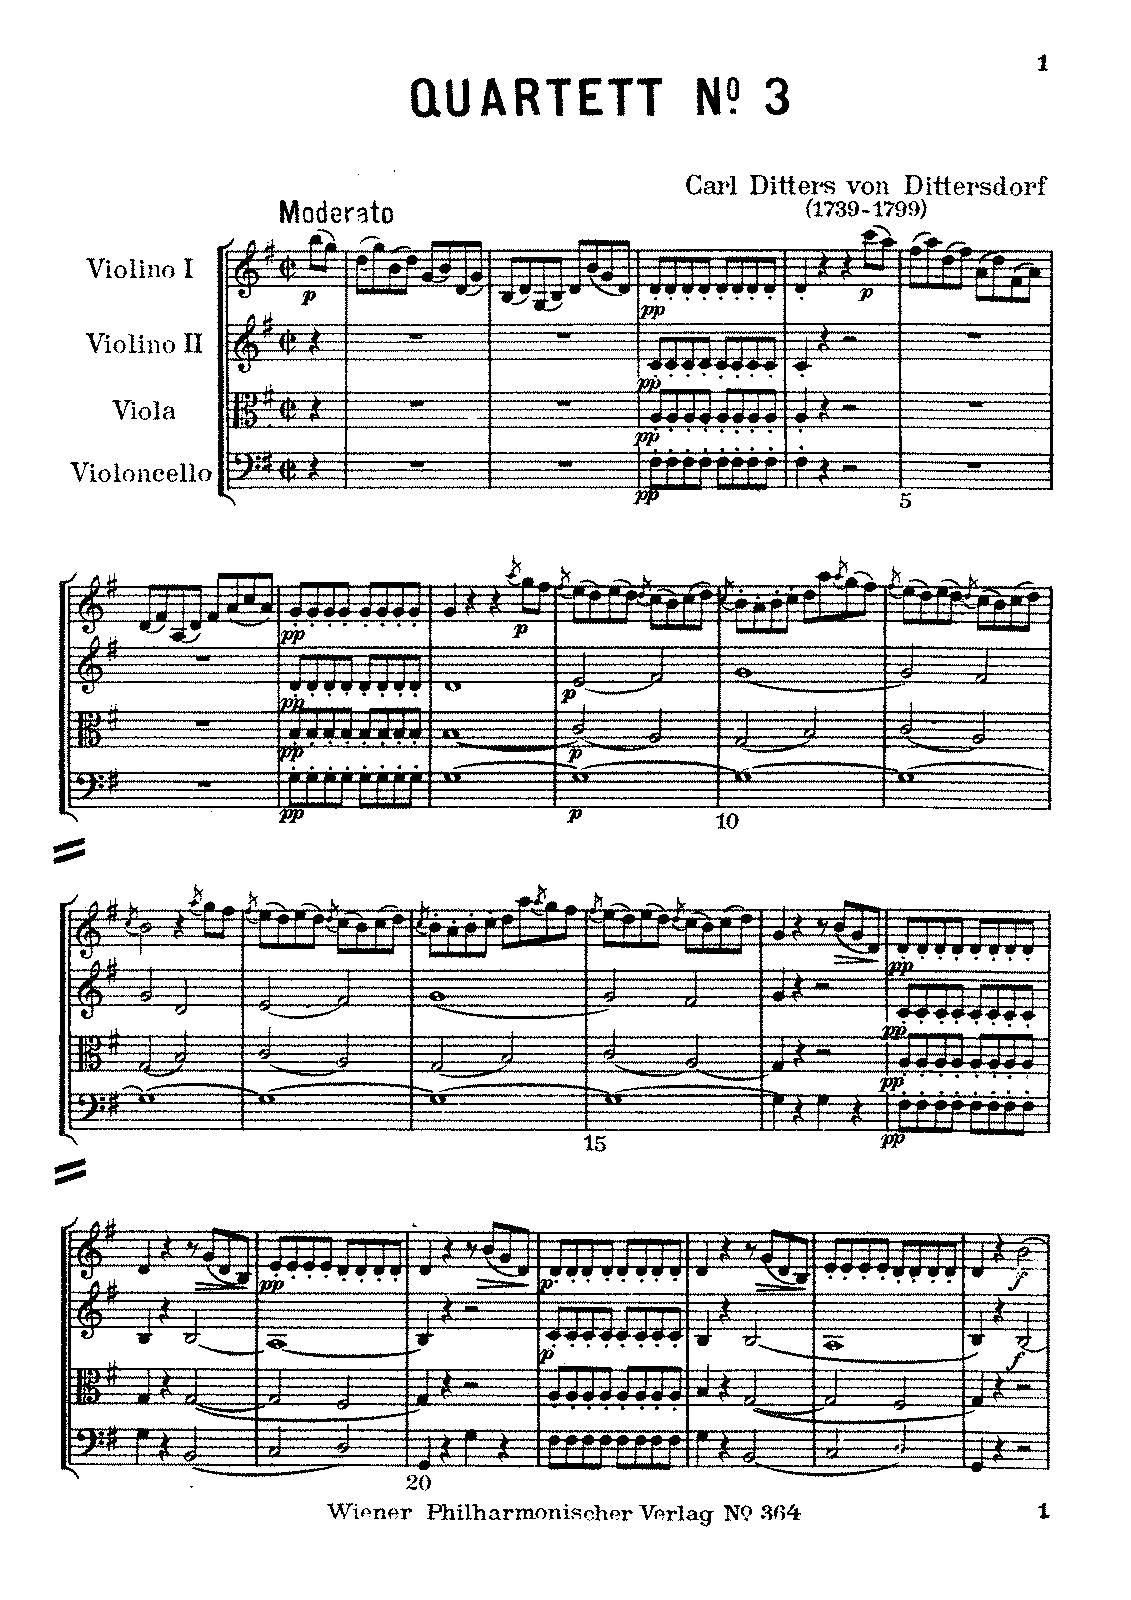 Dittersdorf String Quartet No.3 in G major.pdf